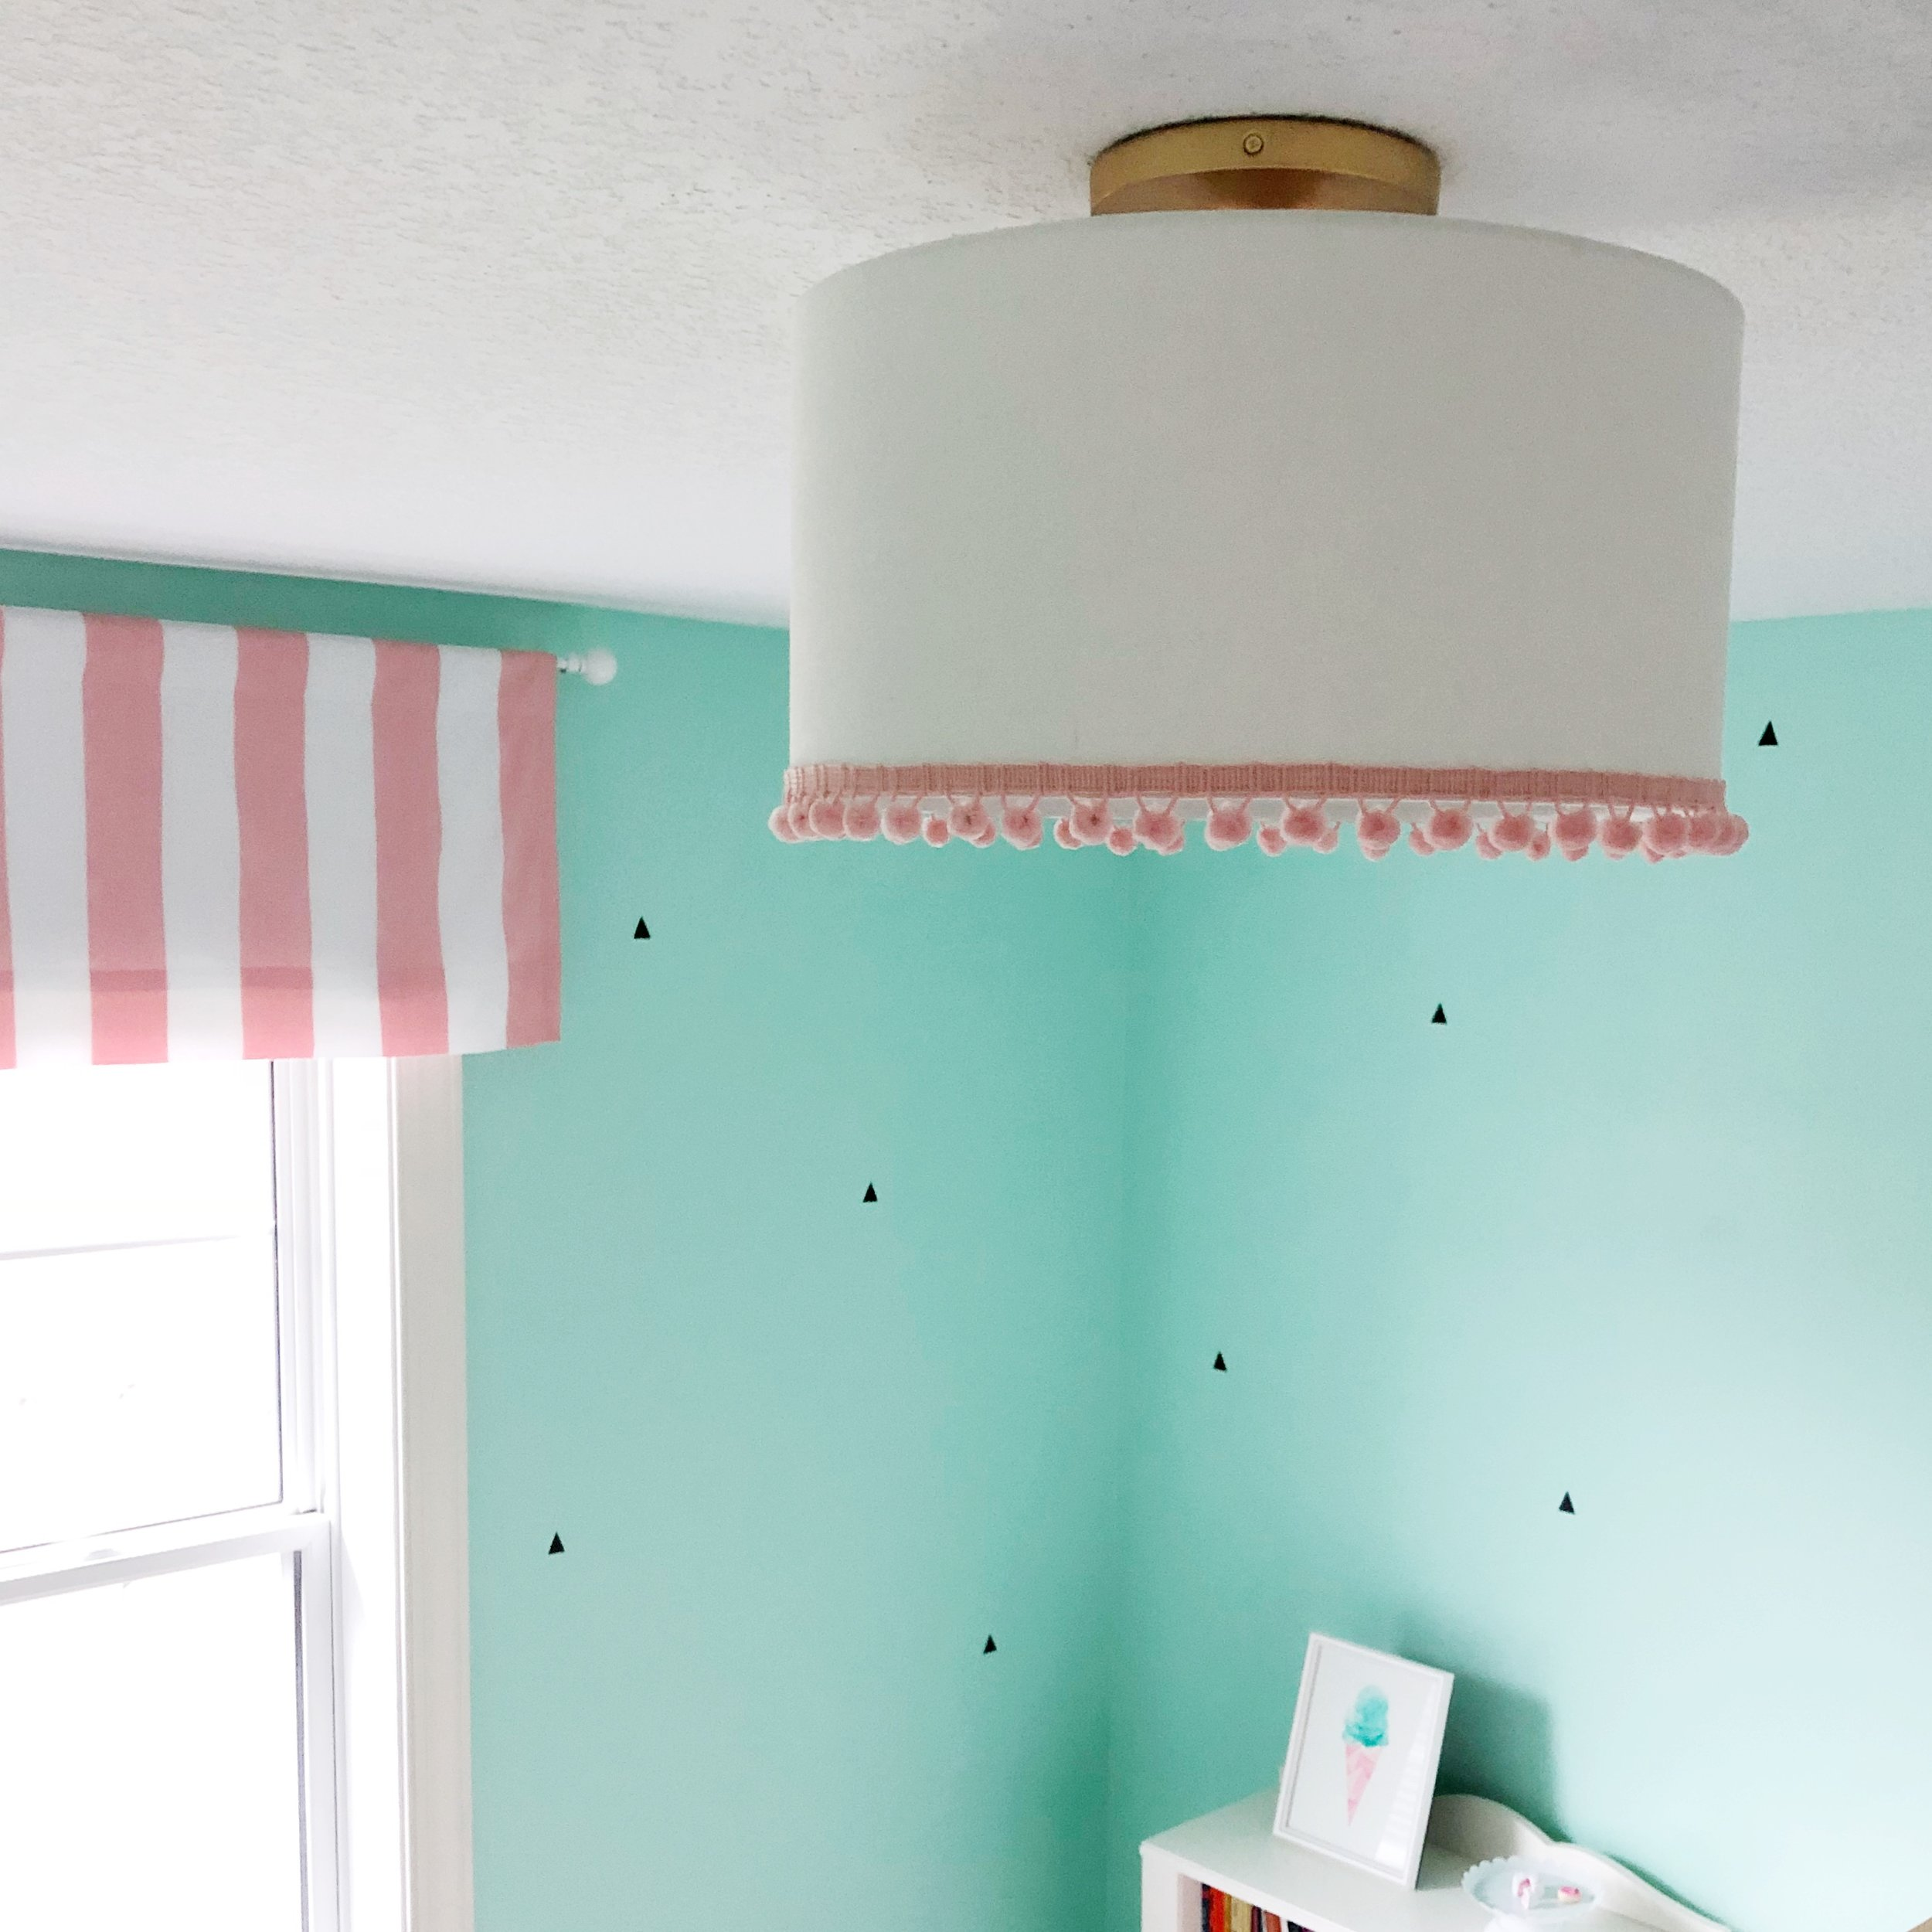 DIY light fixture. Add pom poms to a drum shade from West Elm.